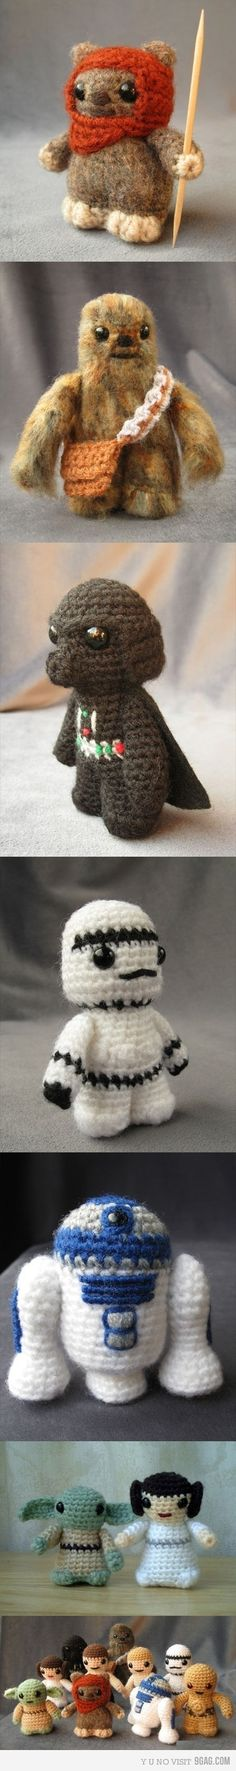 crocheted Star Wars - I want an Ewok! need to make these for louie! he would get a kick out of these guys! gosh i married such a dork! haha